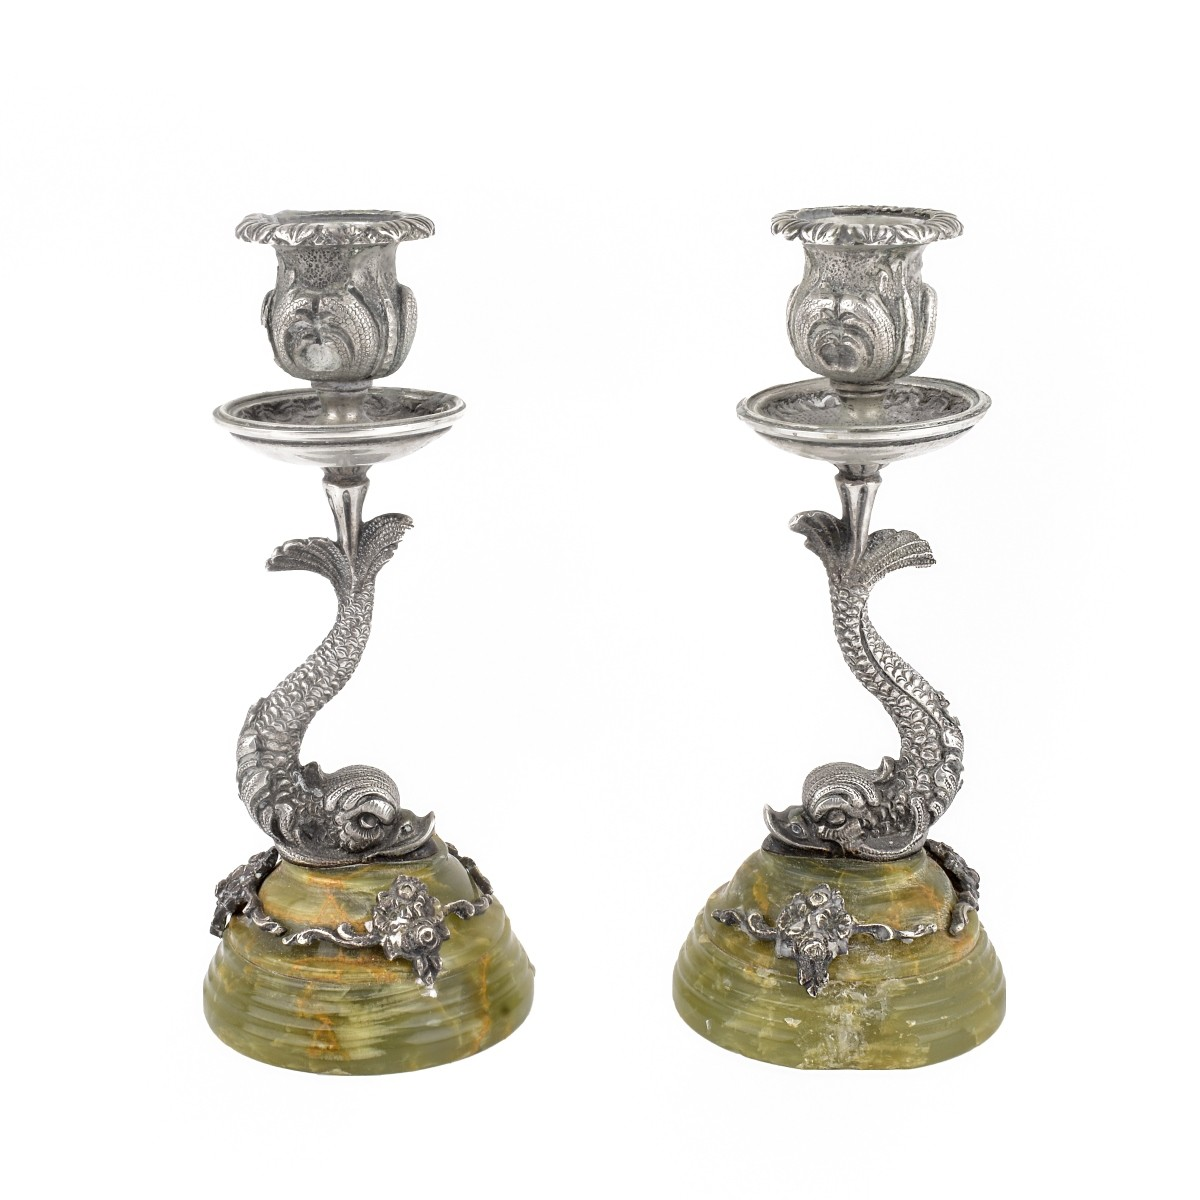 Pair of Empire Style Dolphin Candlesticks